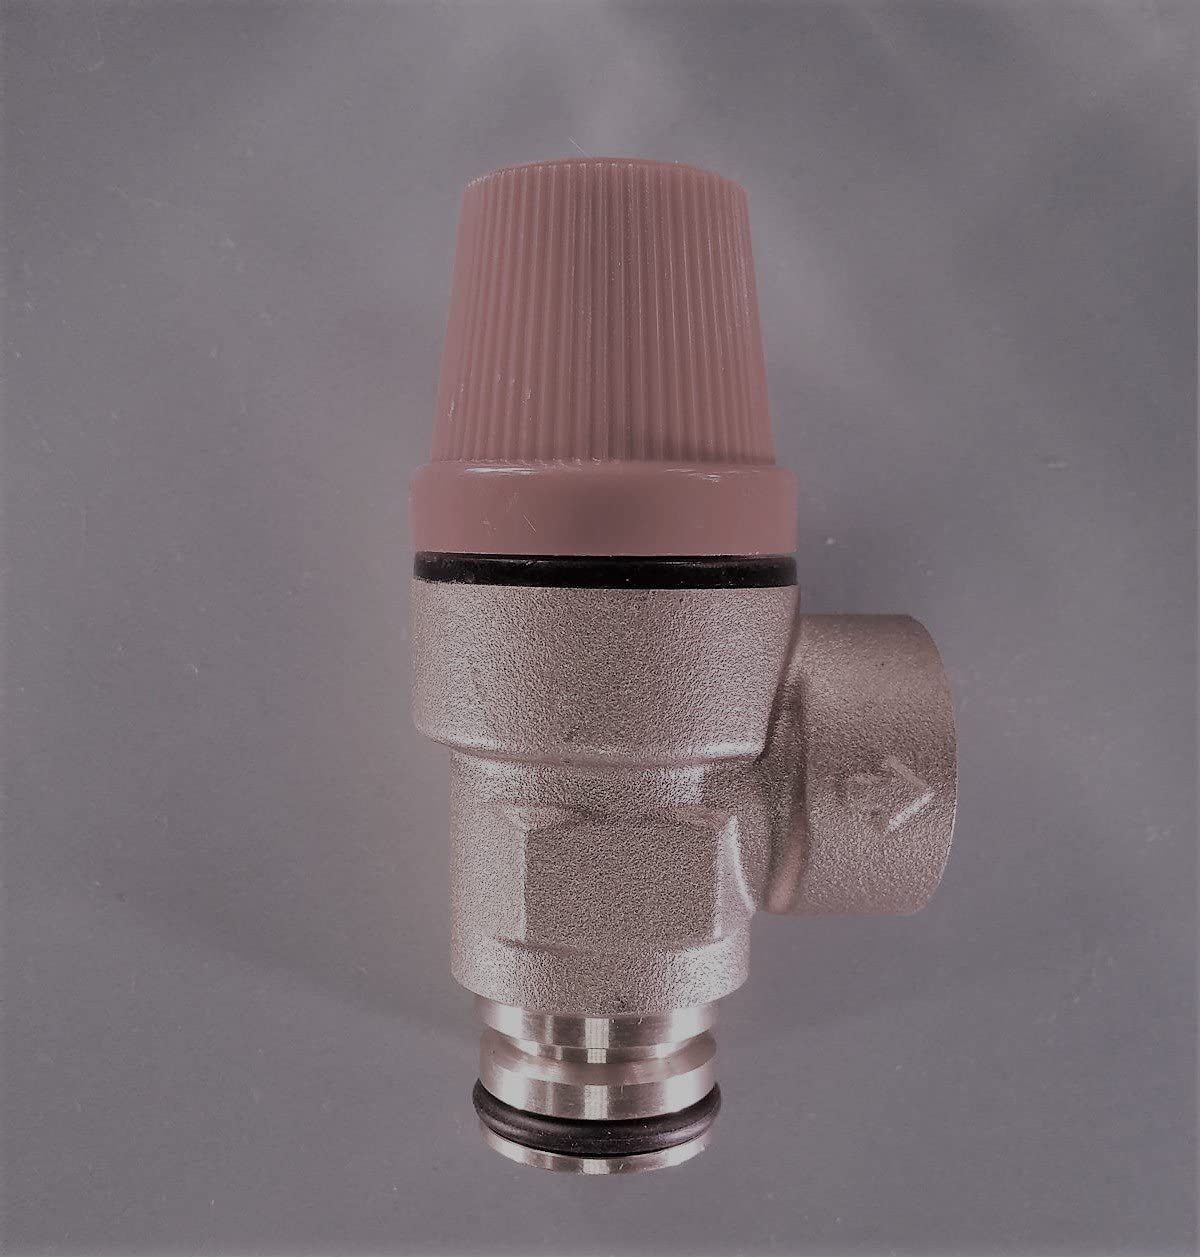 Baxi Combi /& System Pressure Relief Safety Valve 5000721